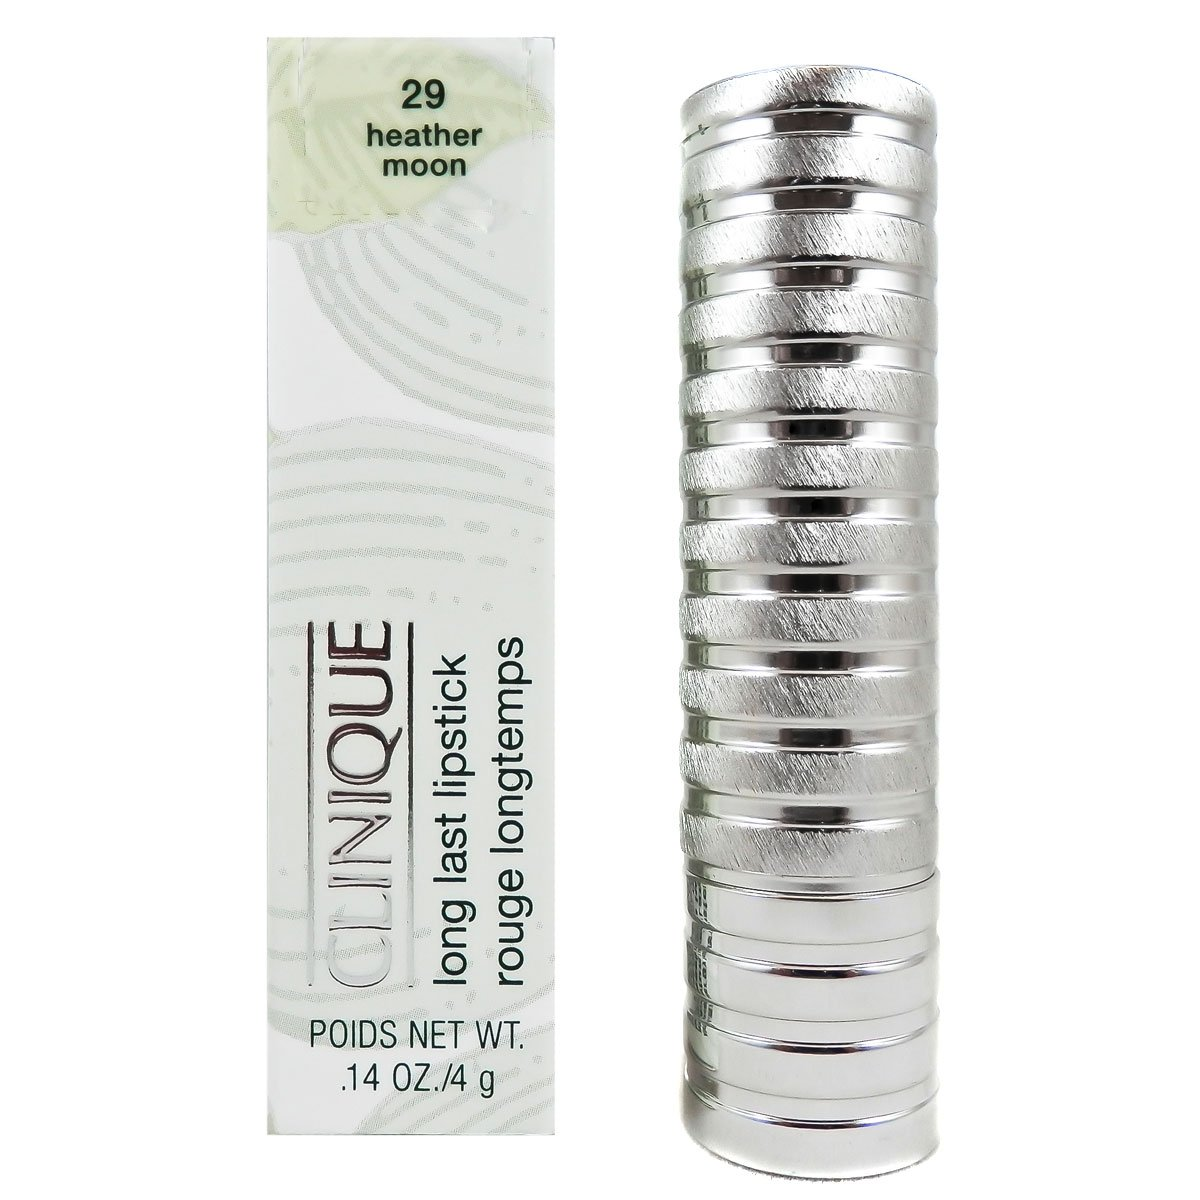 Clinique Long Last Soft Shine Lipstick LL-29 Heather Moon